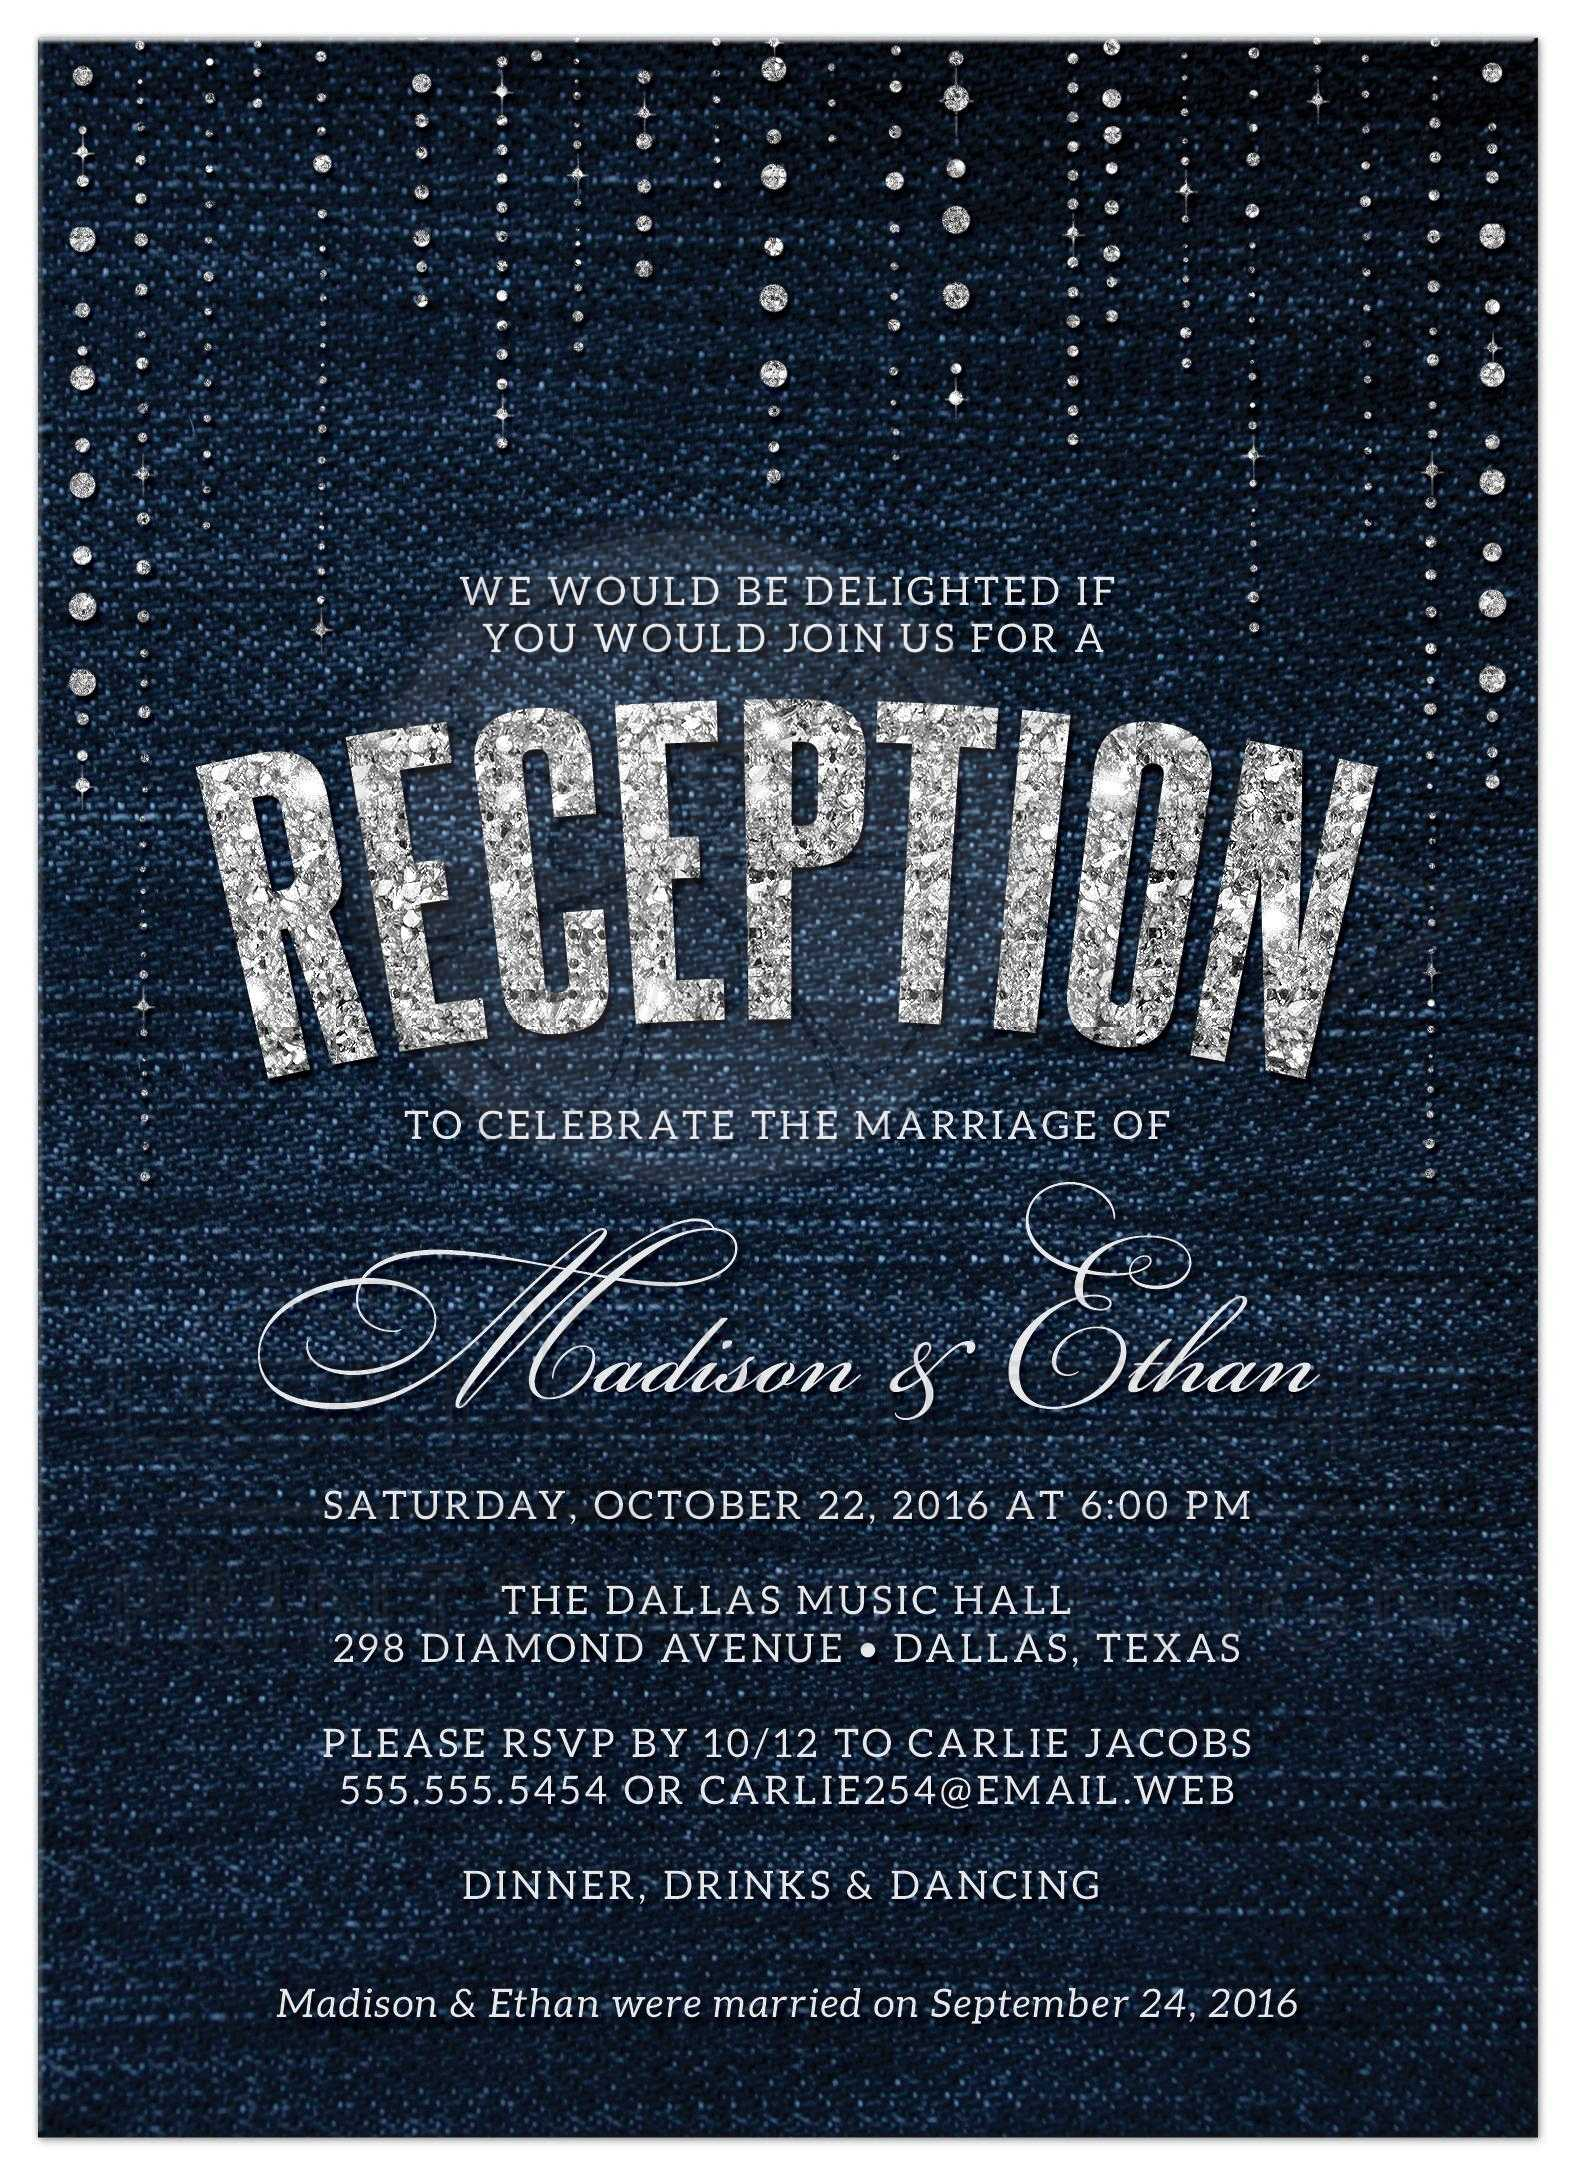 Post Wedding Reception Only Invitations - Denim & Diamonds